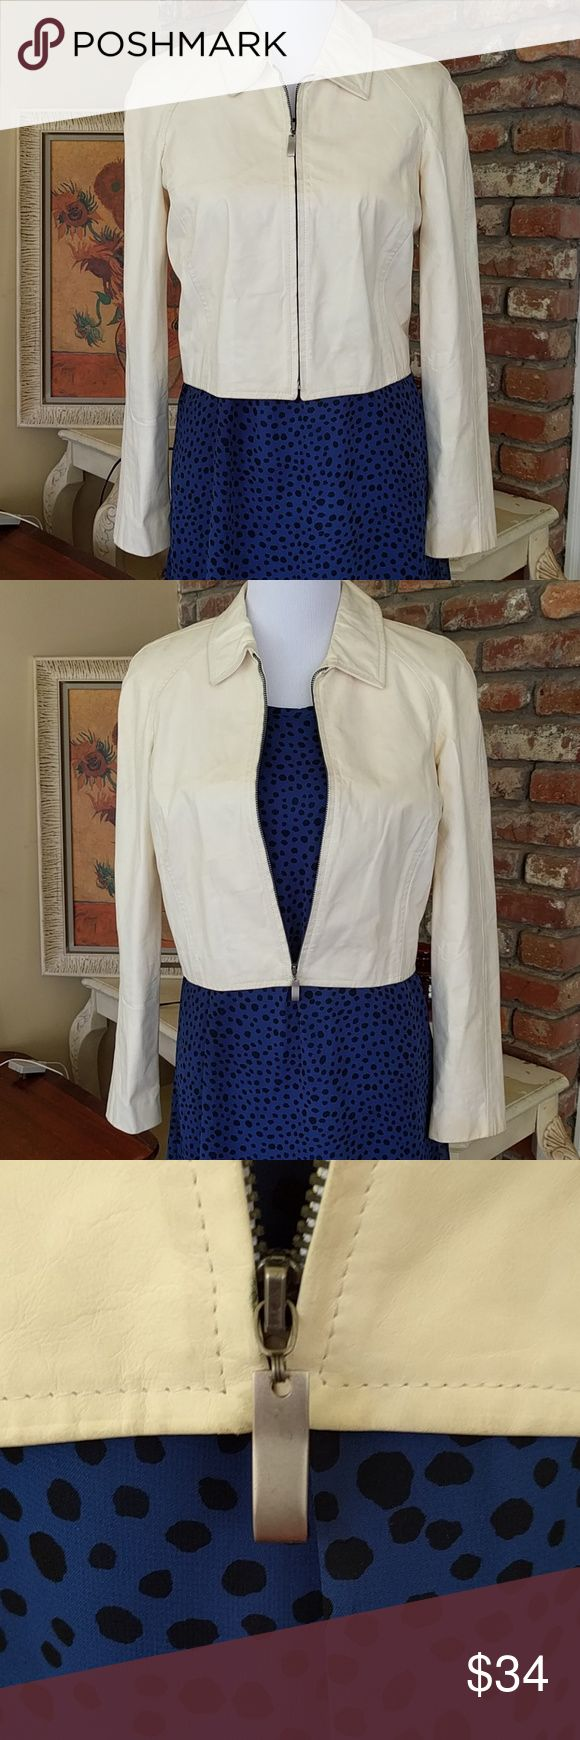 Dana Buchman cream calfskin jacket Cream zip up 100% calfskin leather jacket. Needs professional cleaning from a leather and suede expert. See images. Some dirt, but no major stains or tears in the leather. In great shape with a sturdy brushed nickel zipper. Size 6, hits at waist. Dana Buchman Jackets & Coats Blazers